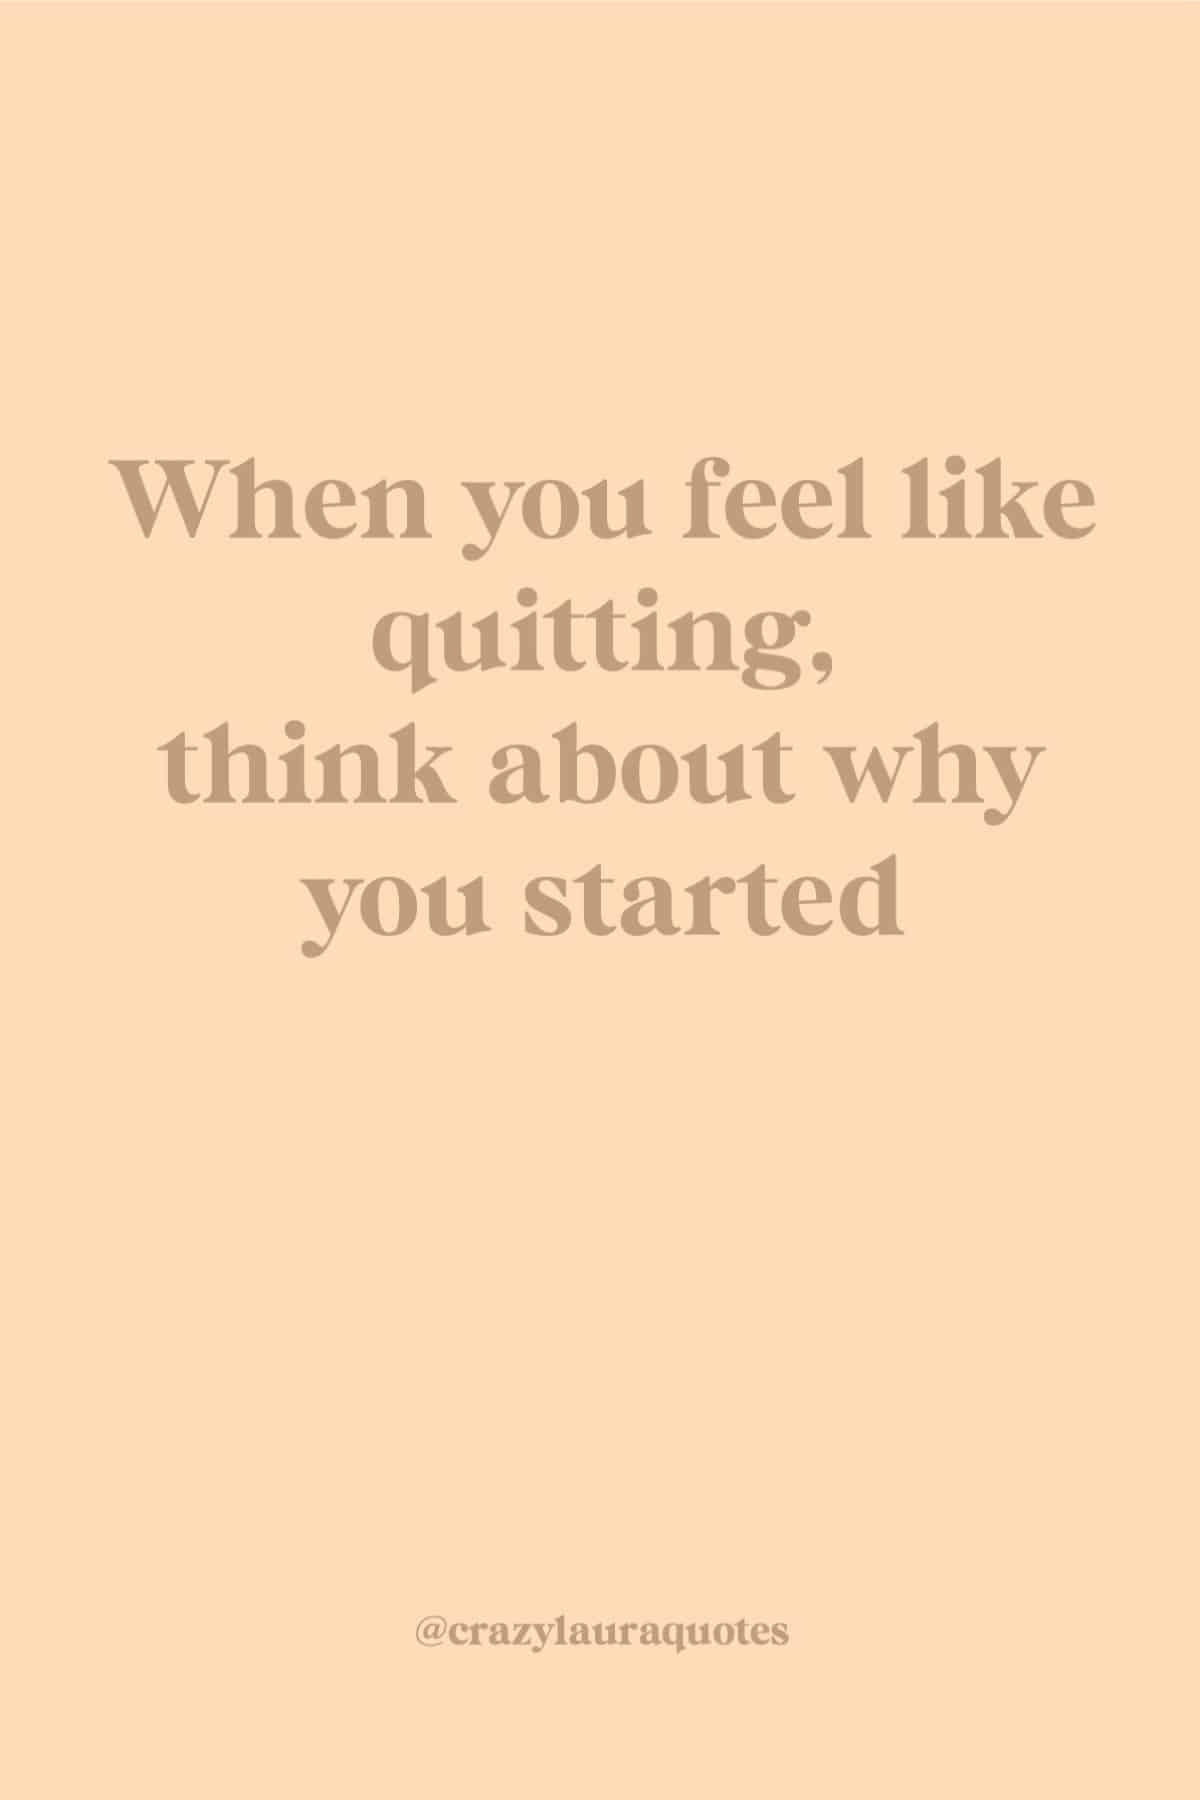 think about why you started fitness quote